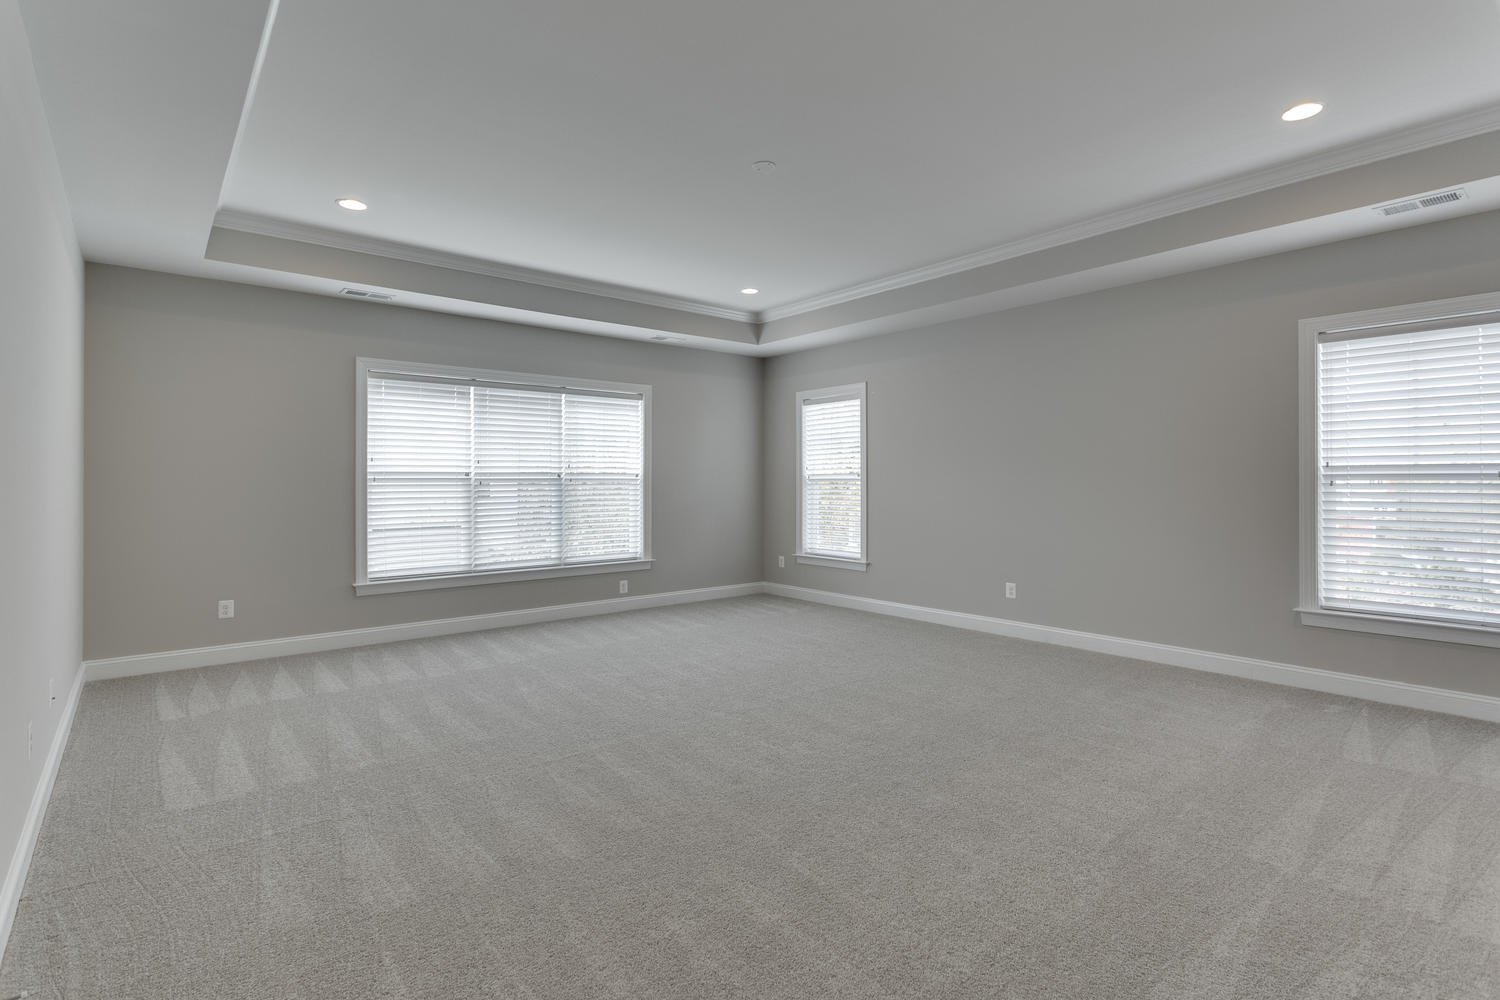 6632 Hallwood Ave Falls Church-large-057-83-Master Bedroom-1500x1000-72dpi